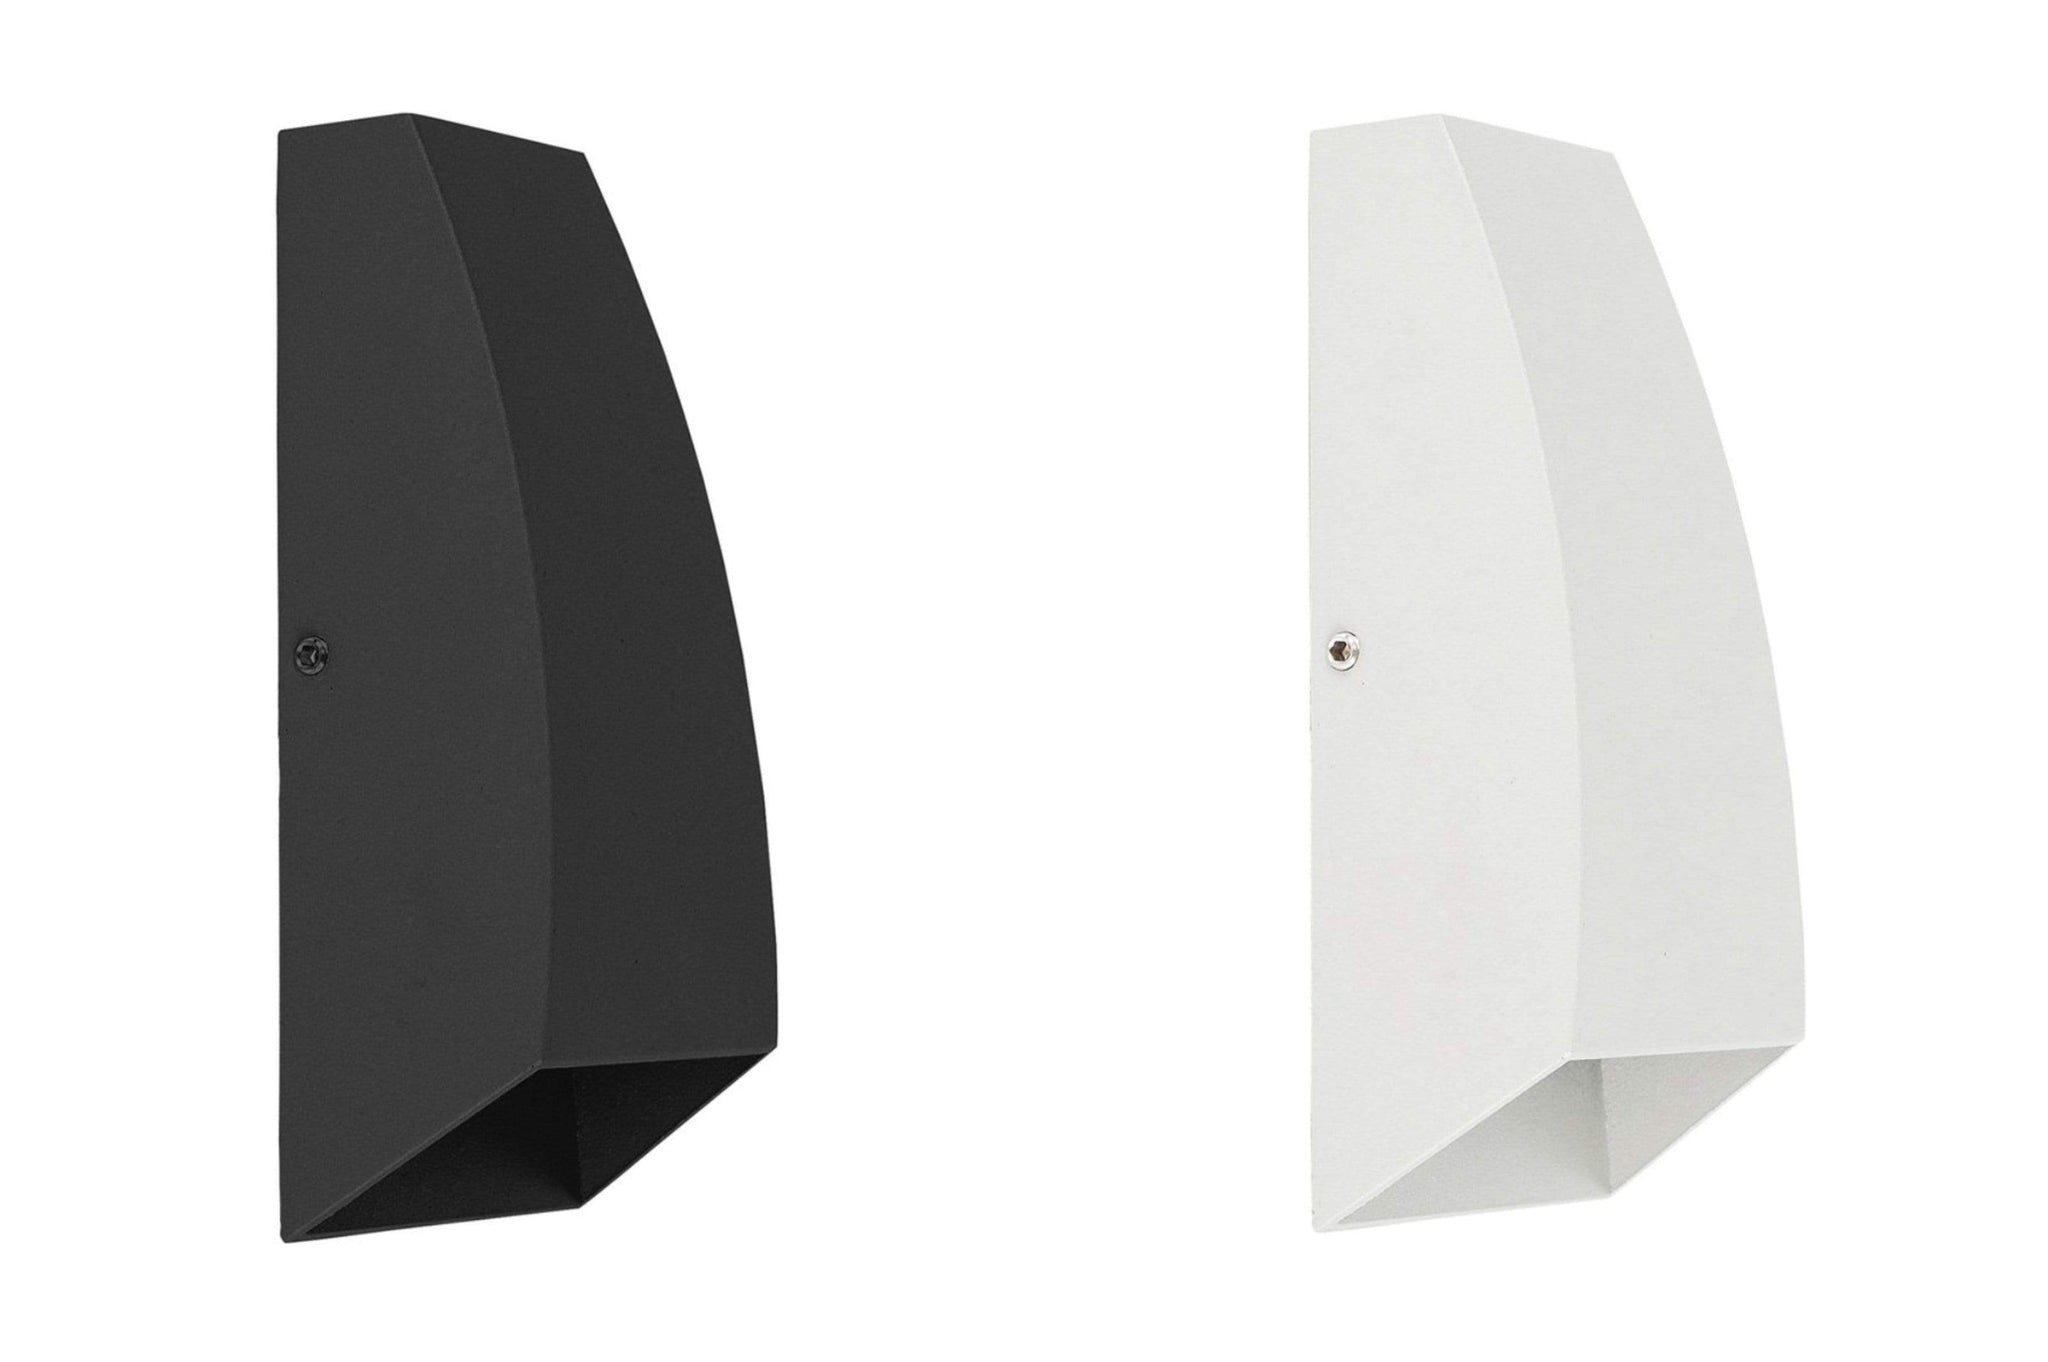 Exterior Wall Light Cono - Up / Down Wall Light